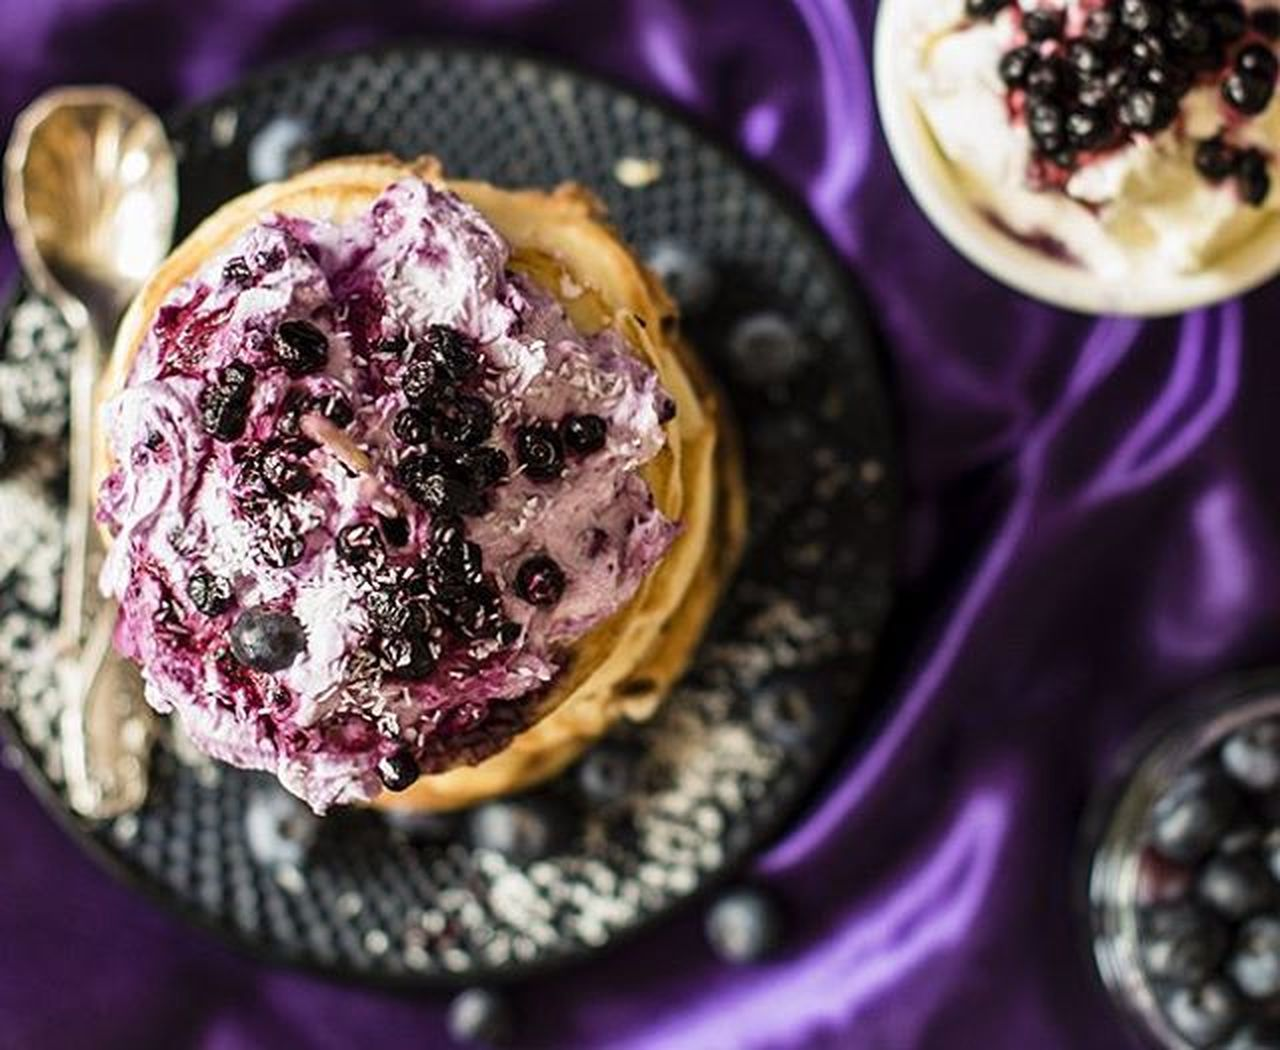 Yes, please: pancakes with blueberry cream cheese. Pancakesforpresident Pancakyday Foodrockstars Foodphotography Purple Foodie Blueberry Sin  Breakfast Todiefor Pancakes Veggie Colours Yummy Sundaymorning Fruit Cleaneats Pancakes With Cream Cheese Fruit Purple Satin Satin Satin Look Foodblog My Favorite Breakfast Moment